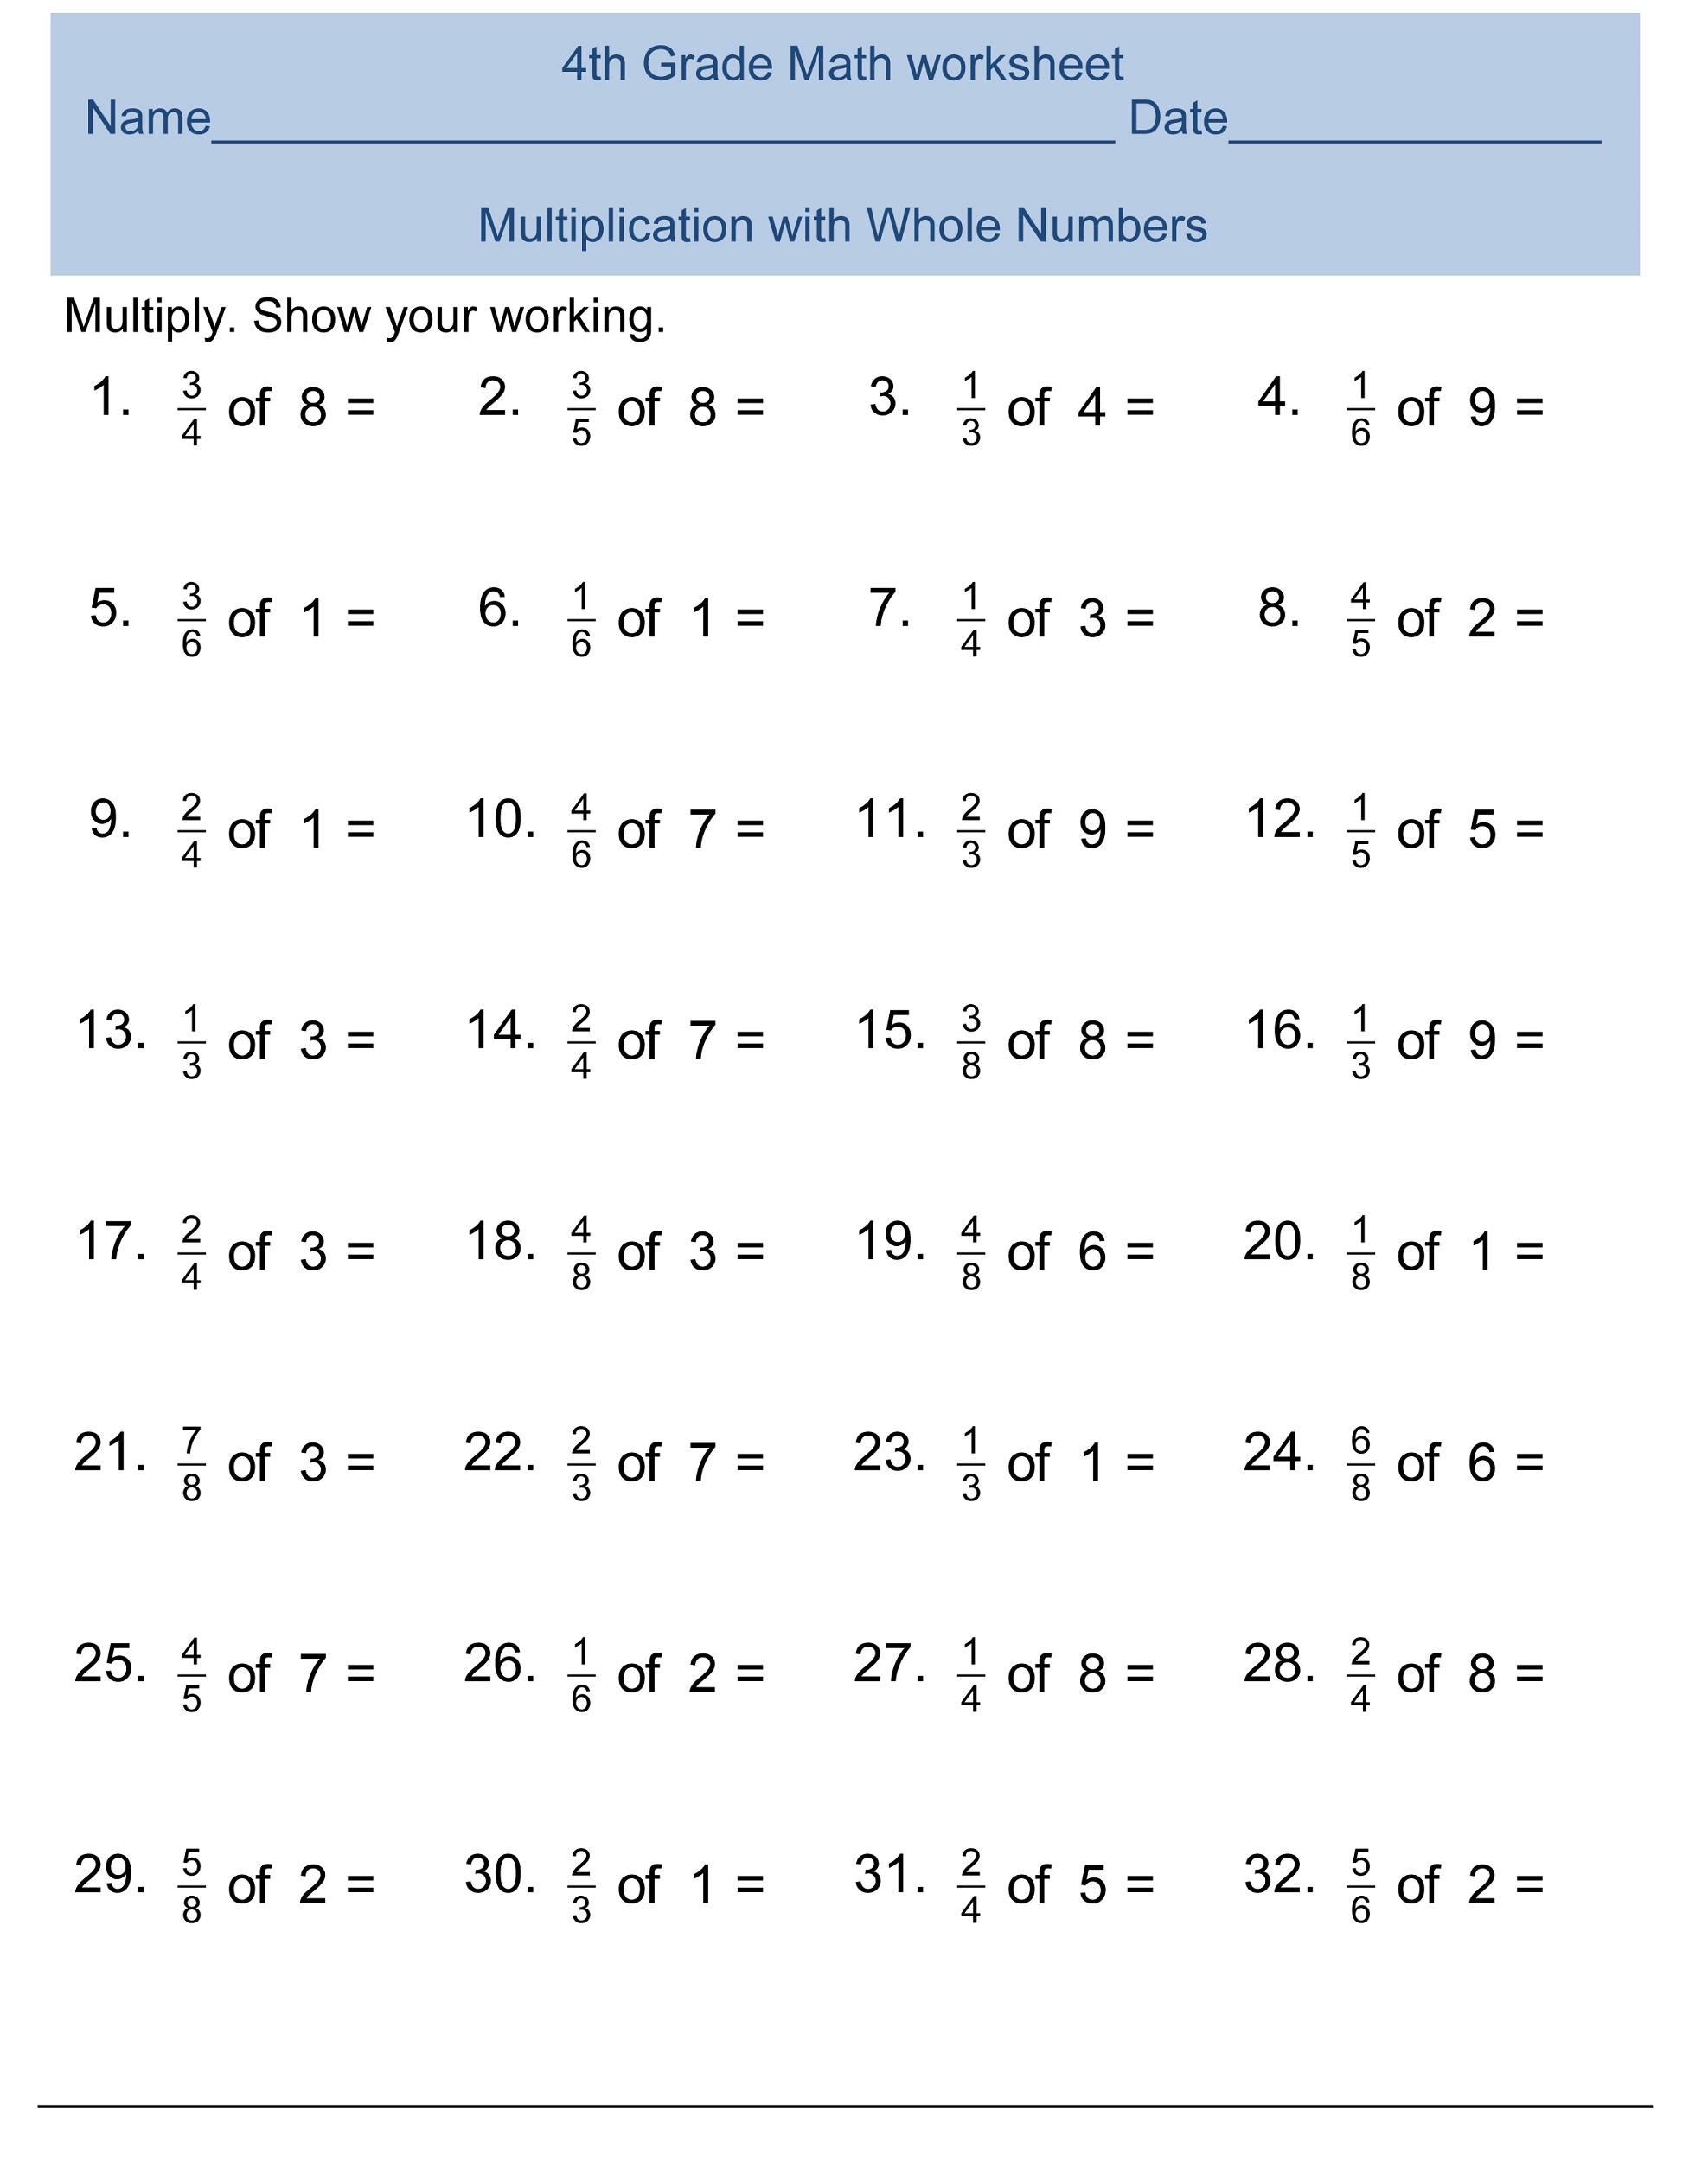 free-4th-grade-math-worksheets-2